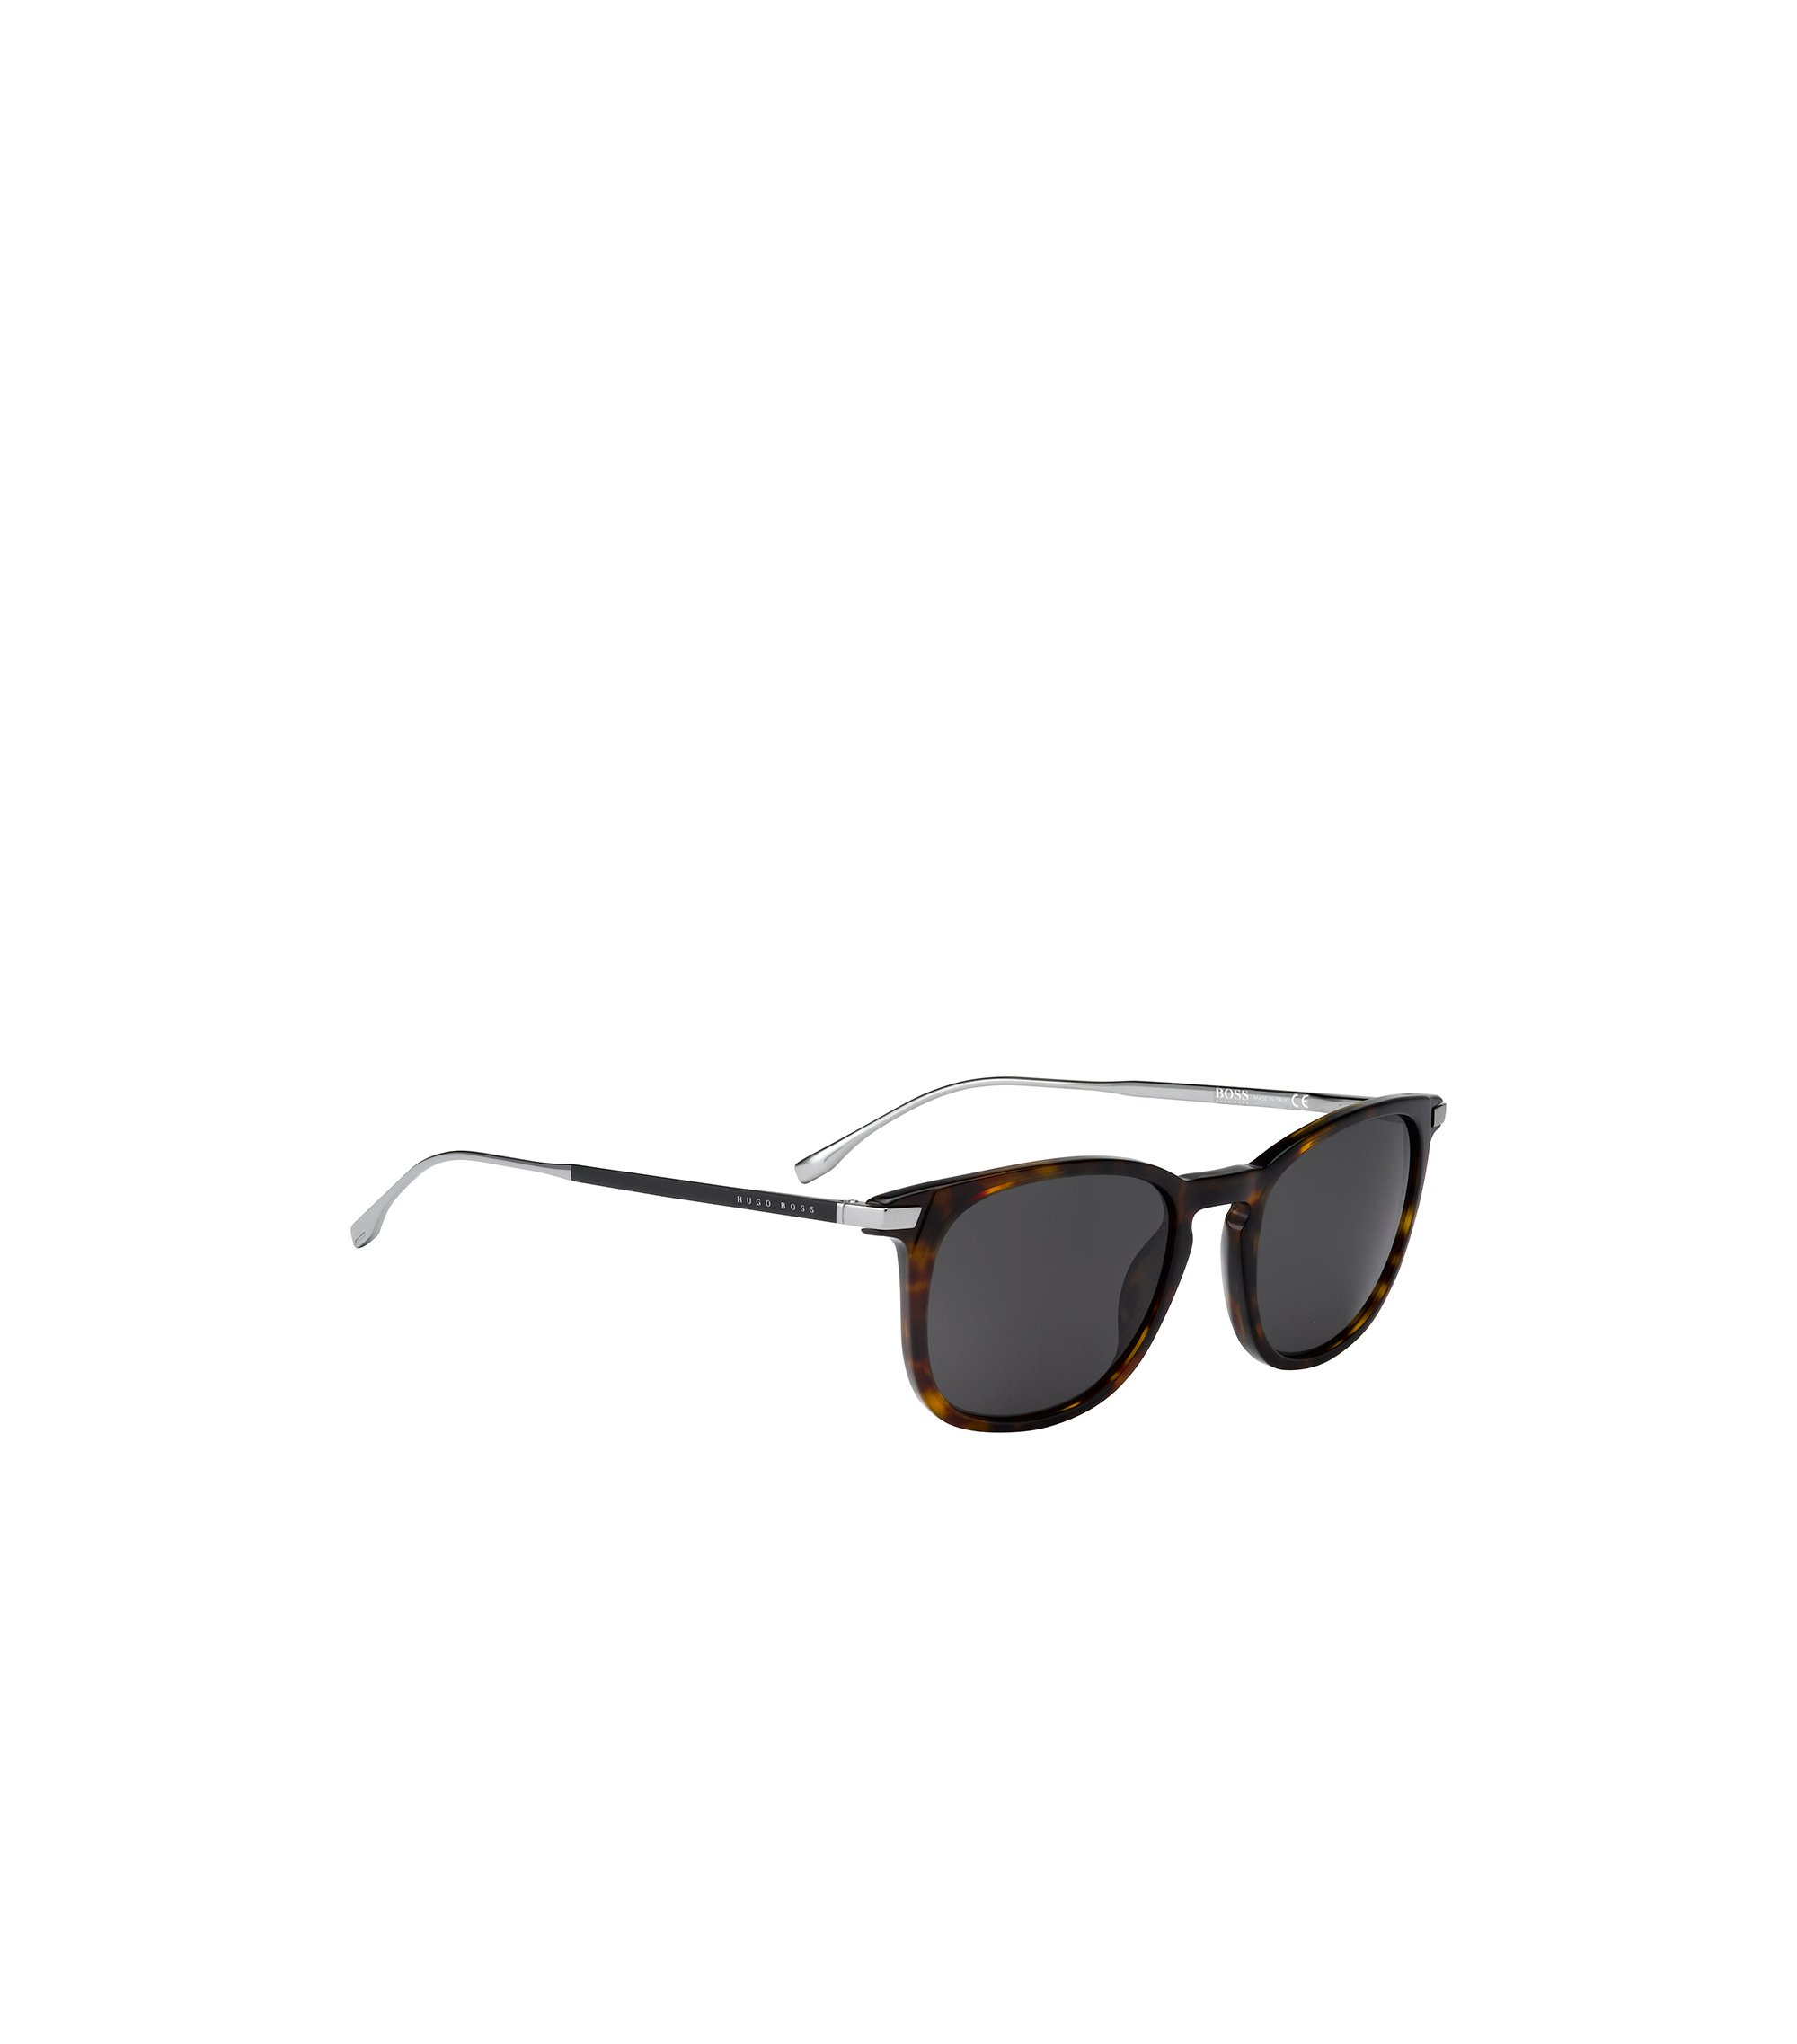 Gray Lens Acetate Sunglasses | BOSS 0783S, Assorted-Pre-Pack